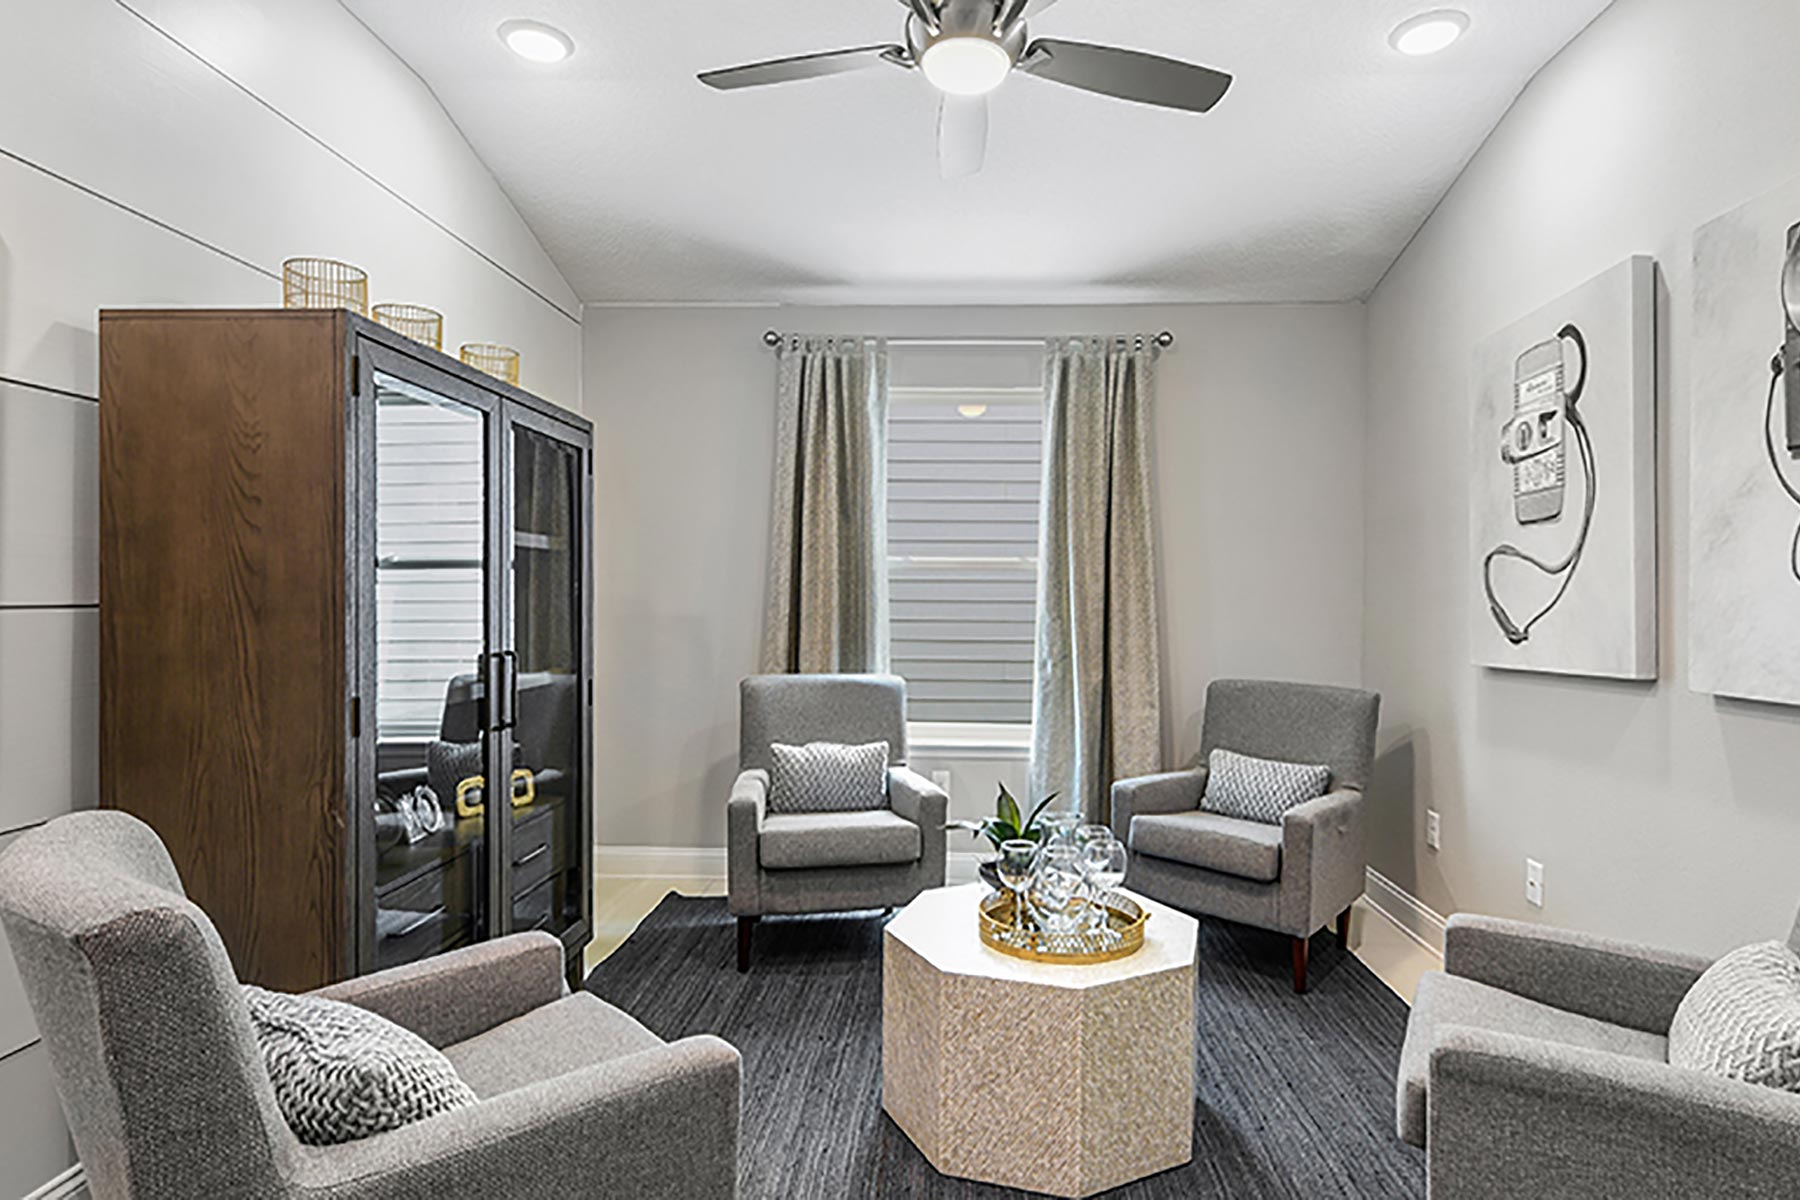 Elm Plan Recreation Room at Wells Creek in Jacksonville Florida by Mattamy Homes